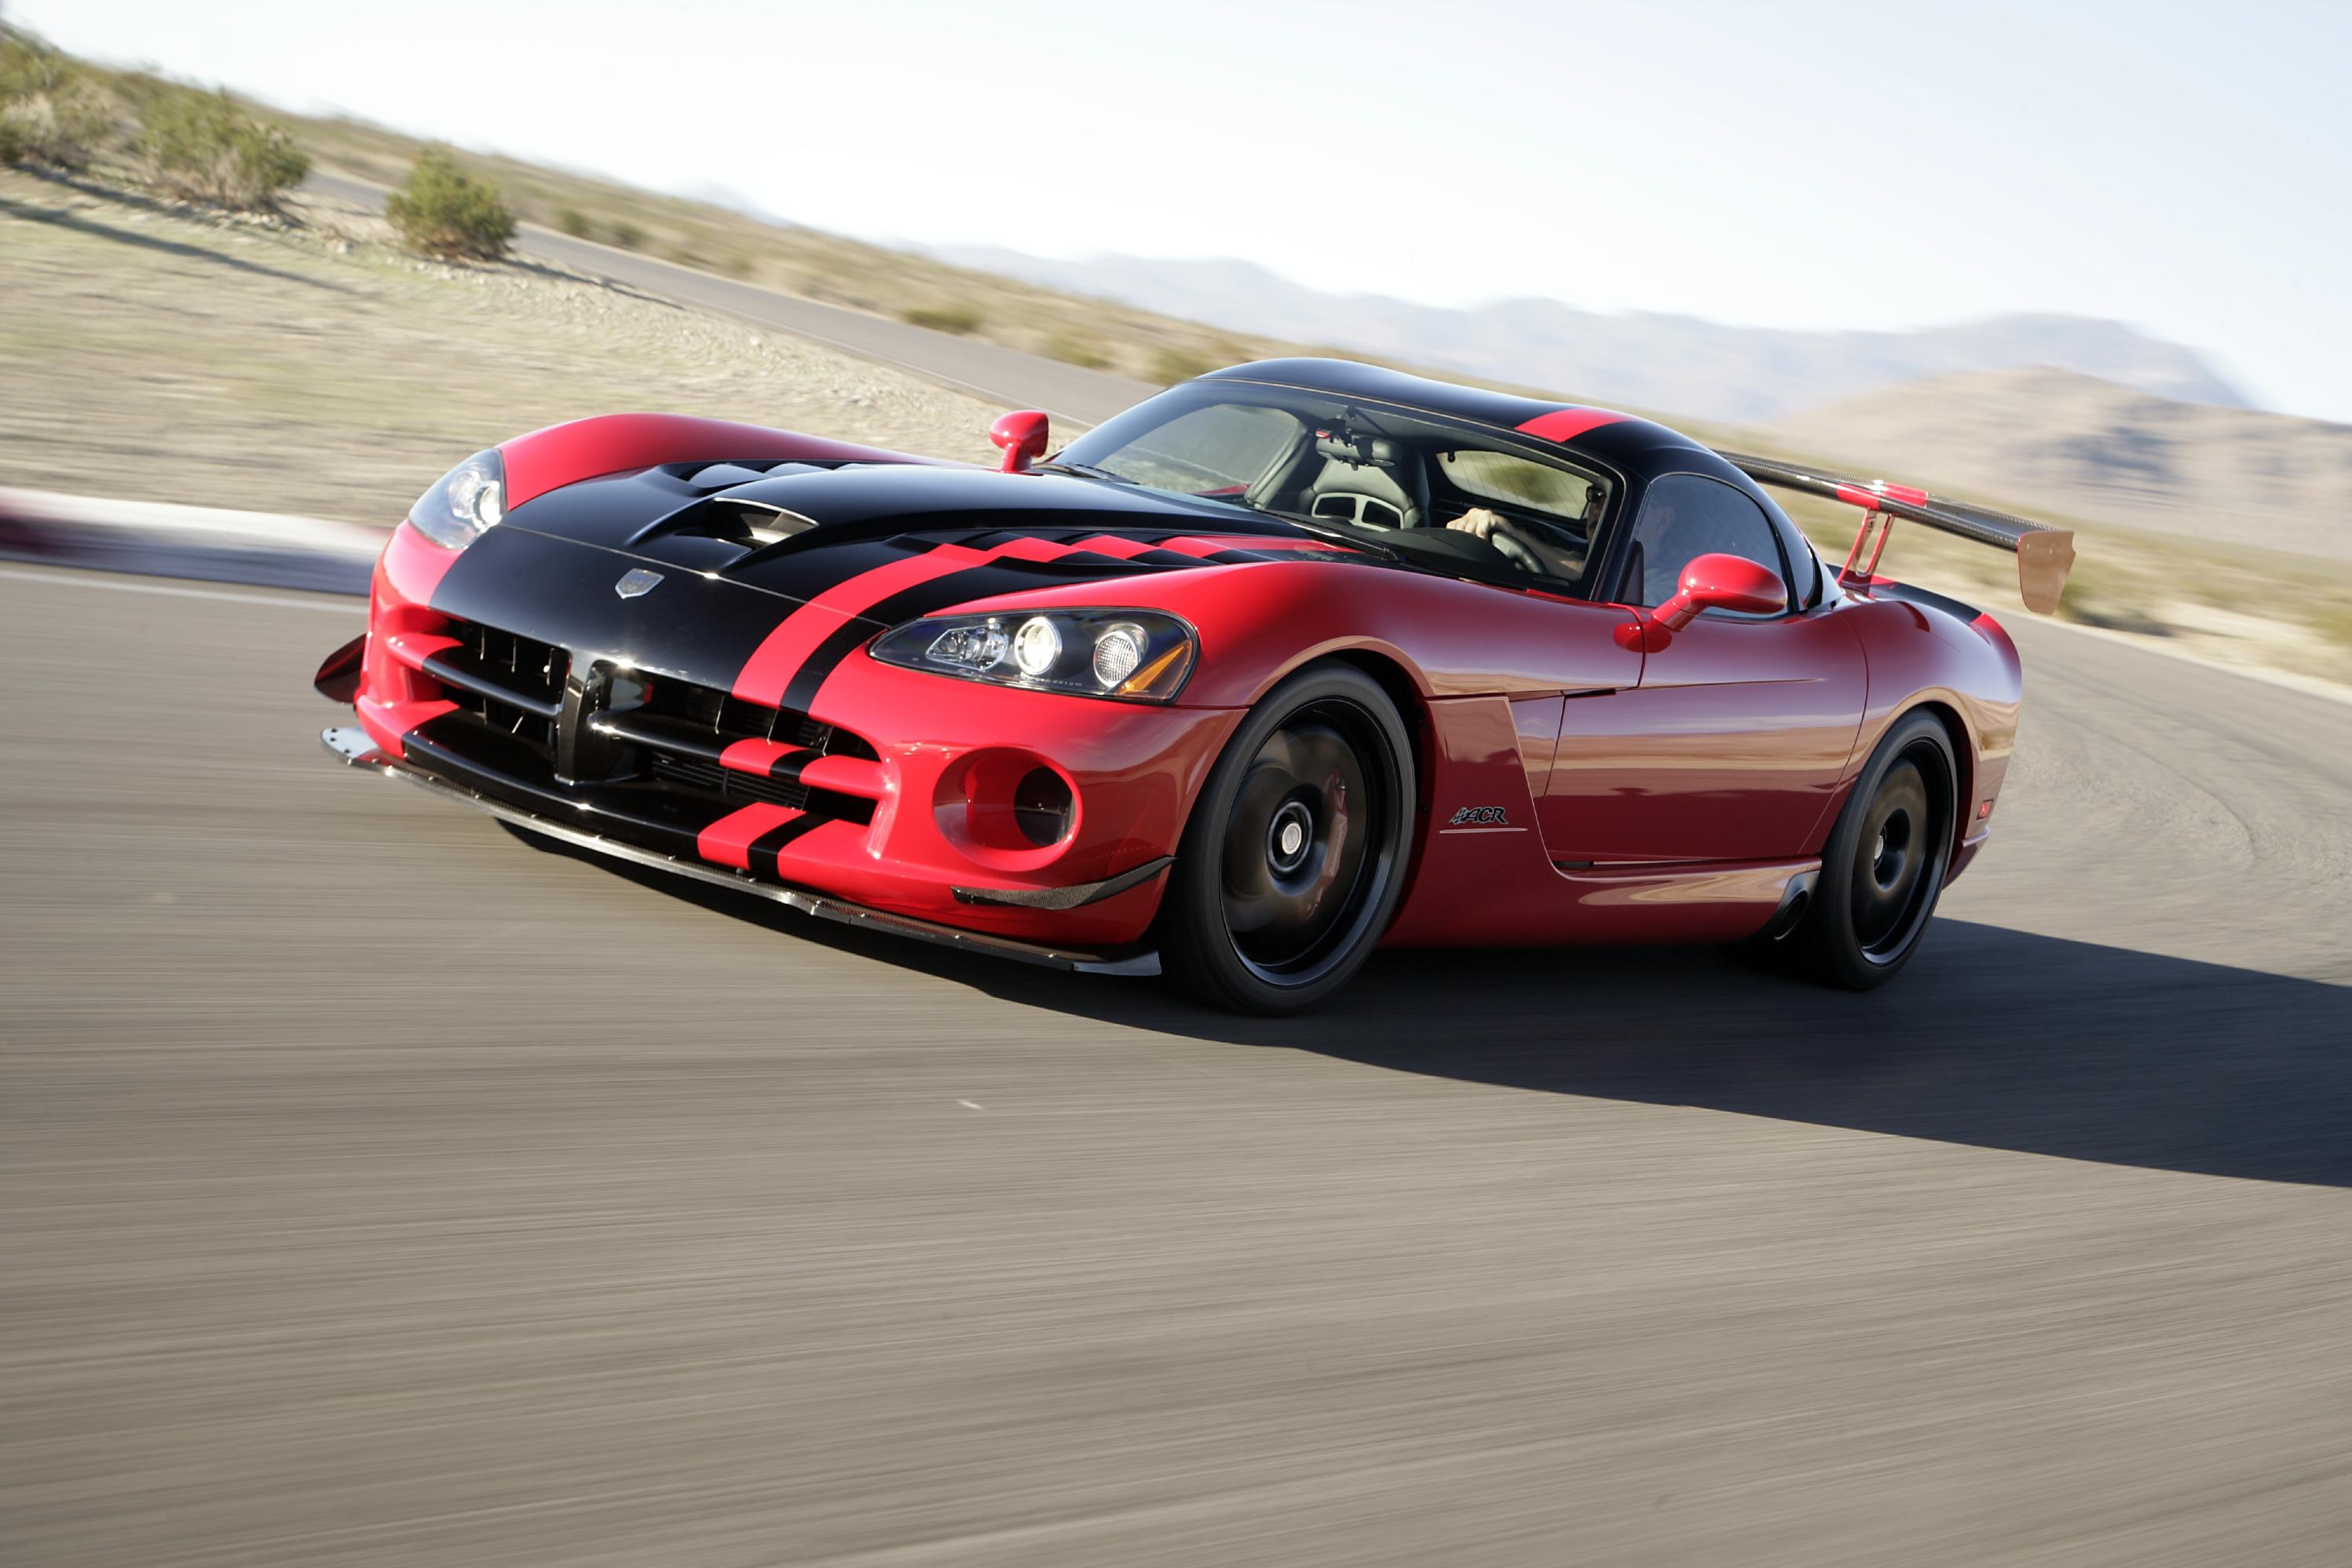 Dodge unveiled the fourth generation viper srt10 acr a the los angeles auto show in 2007 bringing what would essentially be the last model presented before